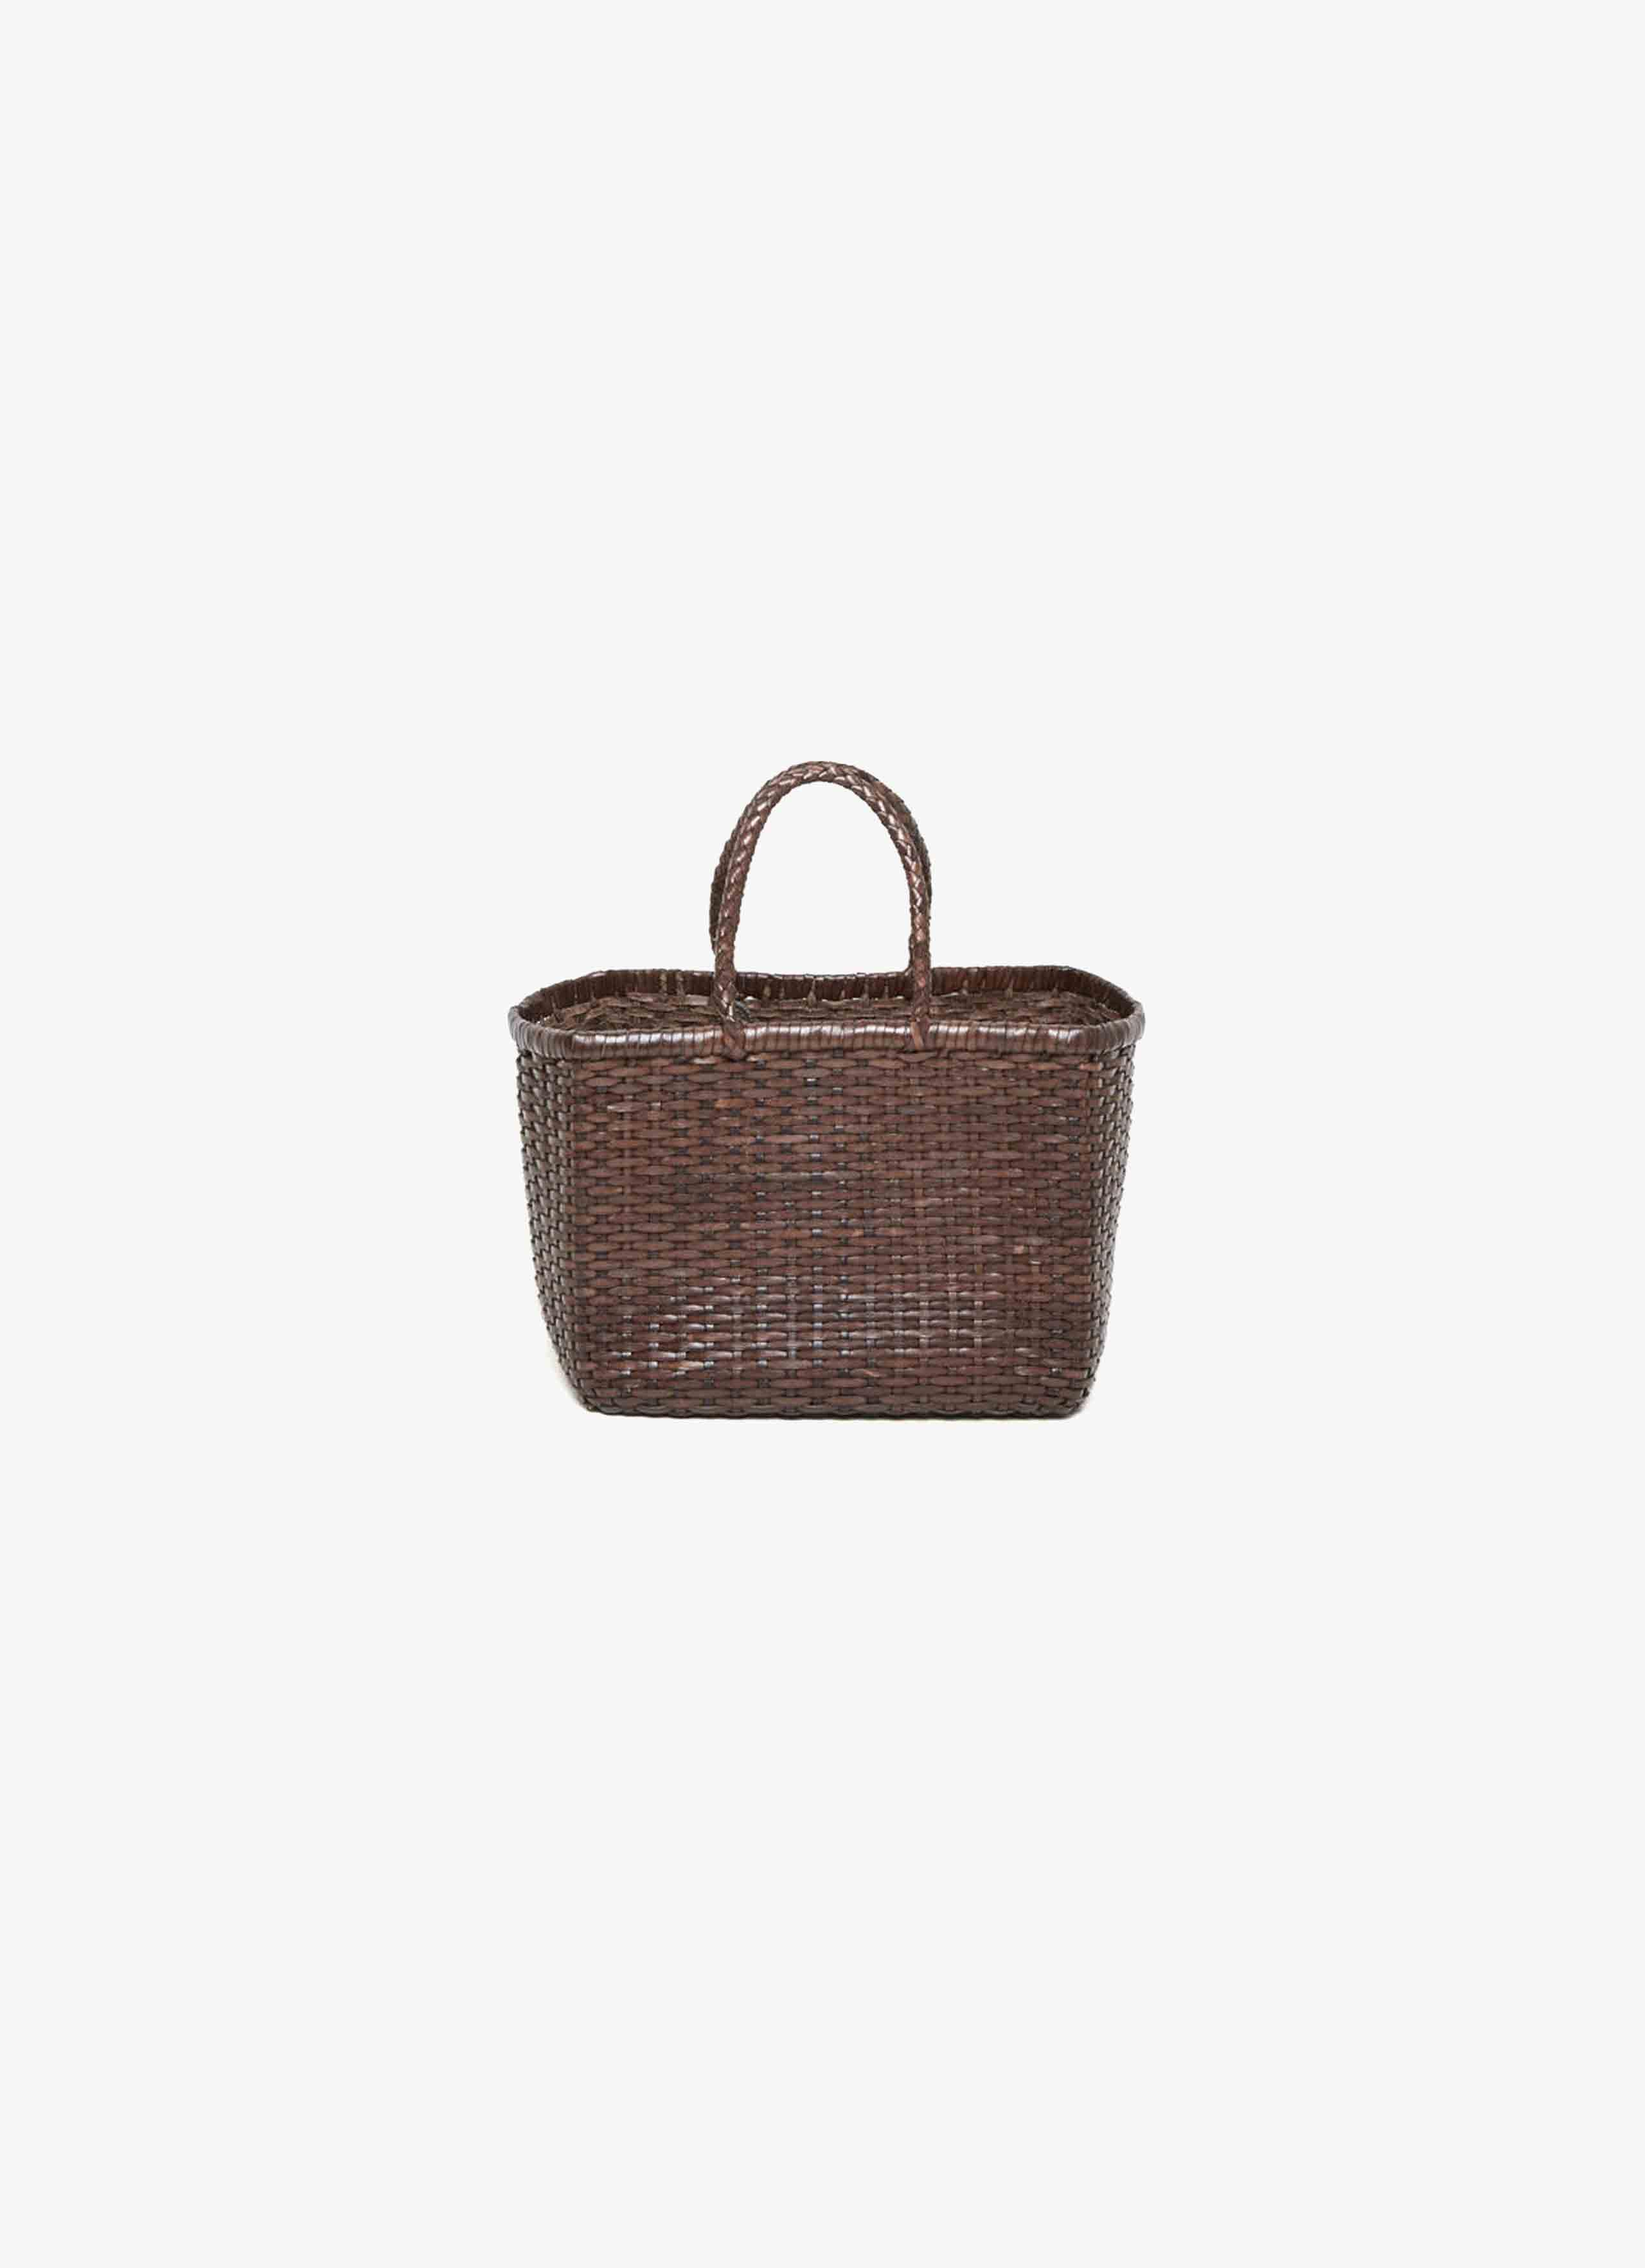 Dragon Diffusion - Small Tote - Leather Wicker Bag - dark brown